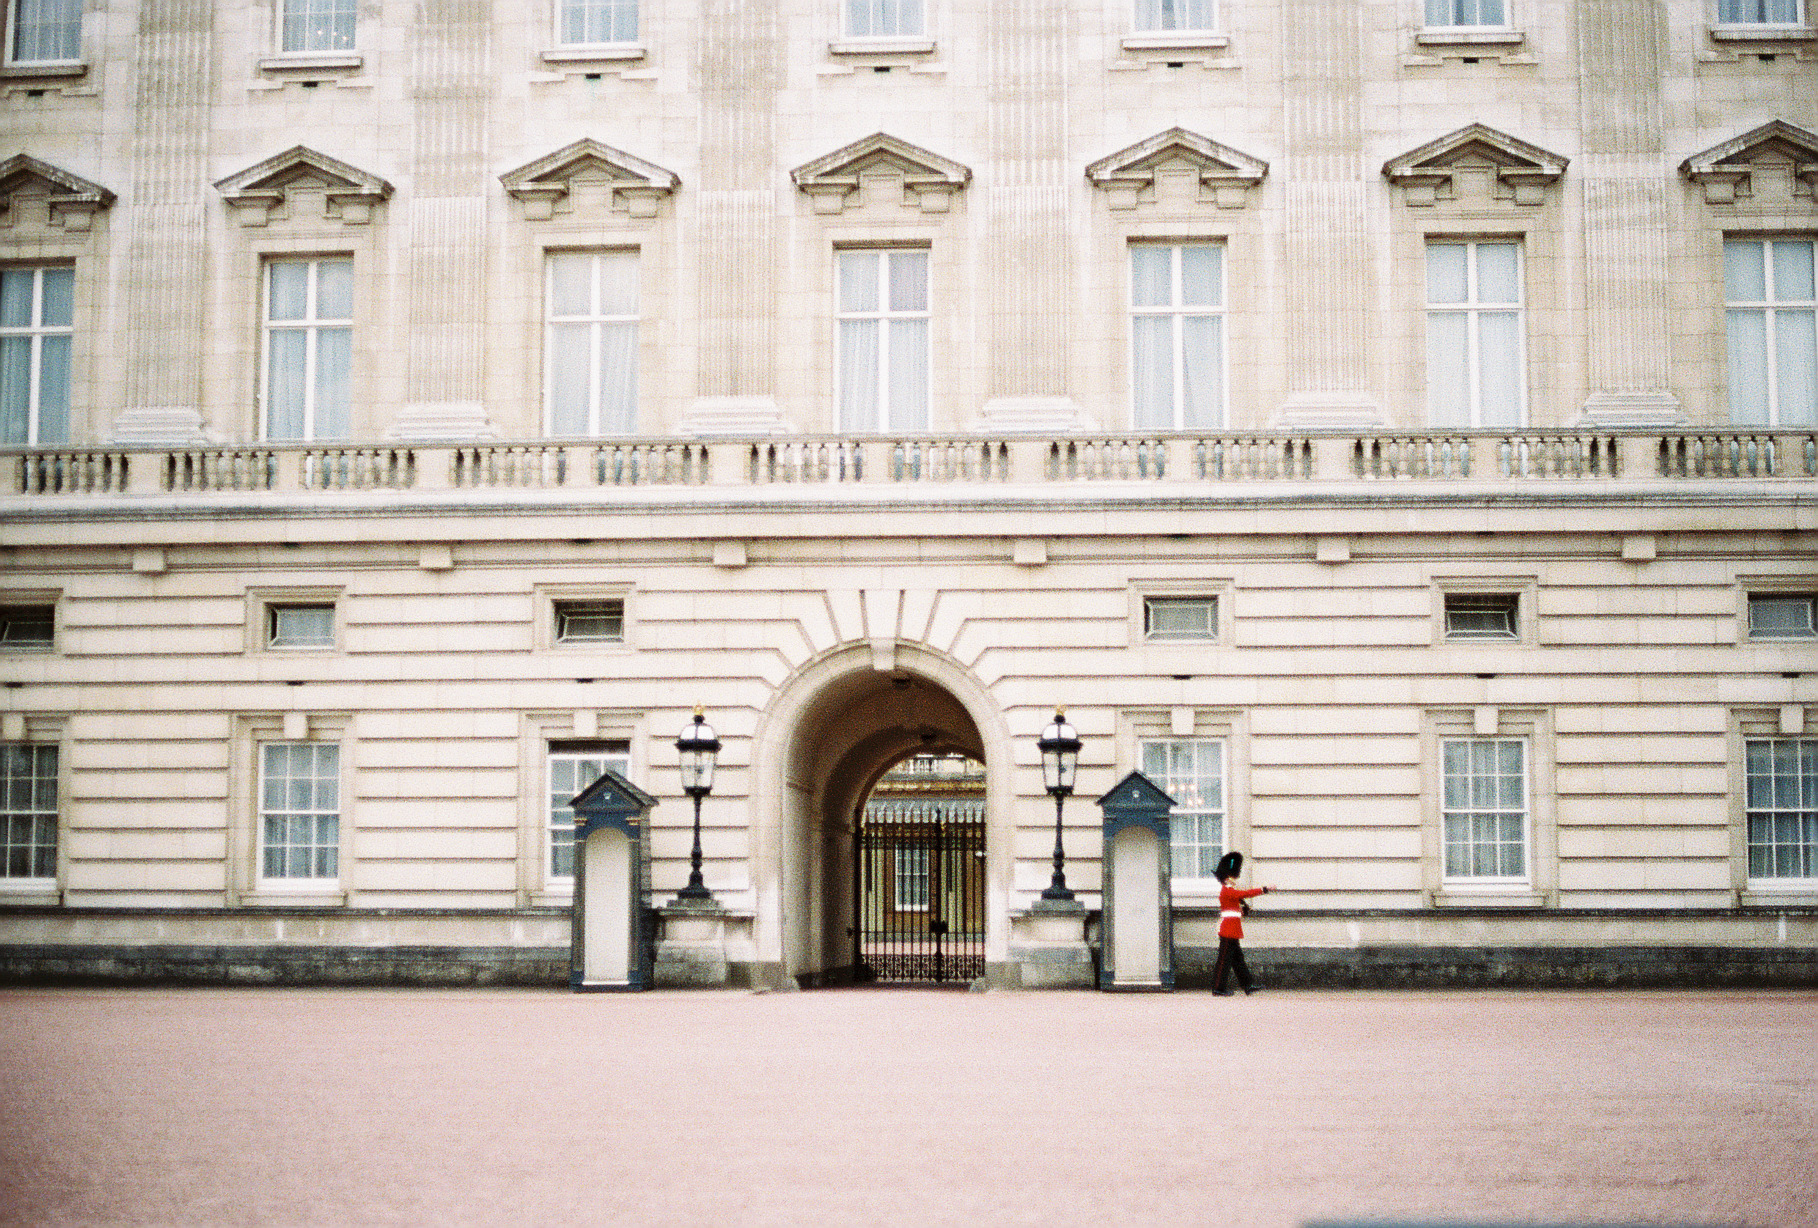 front-buckingham-palace-guard-london-uk-european-honeymoon